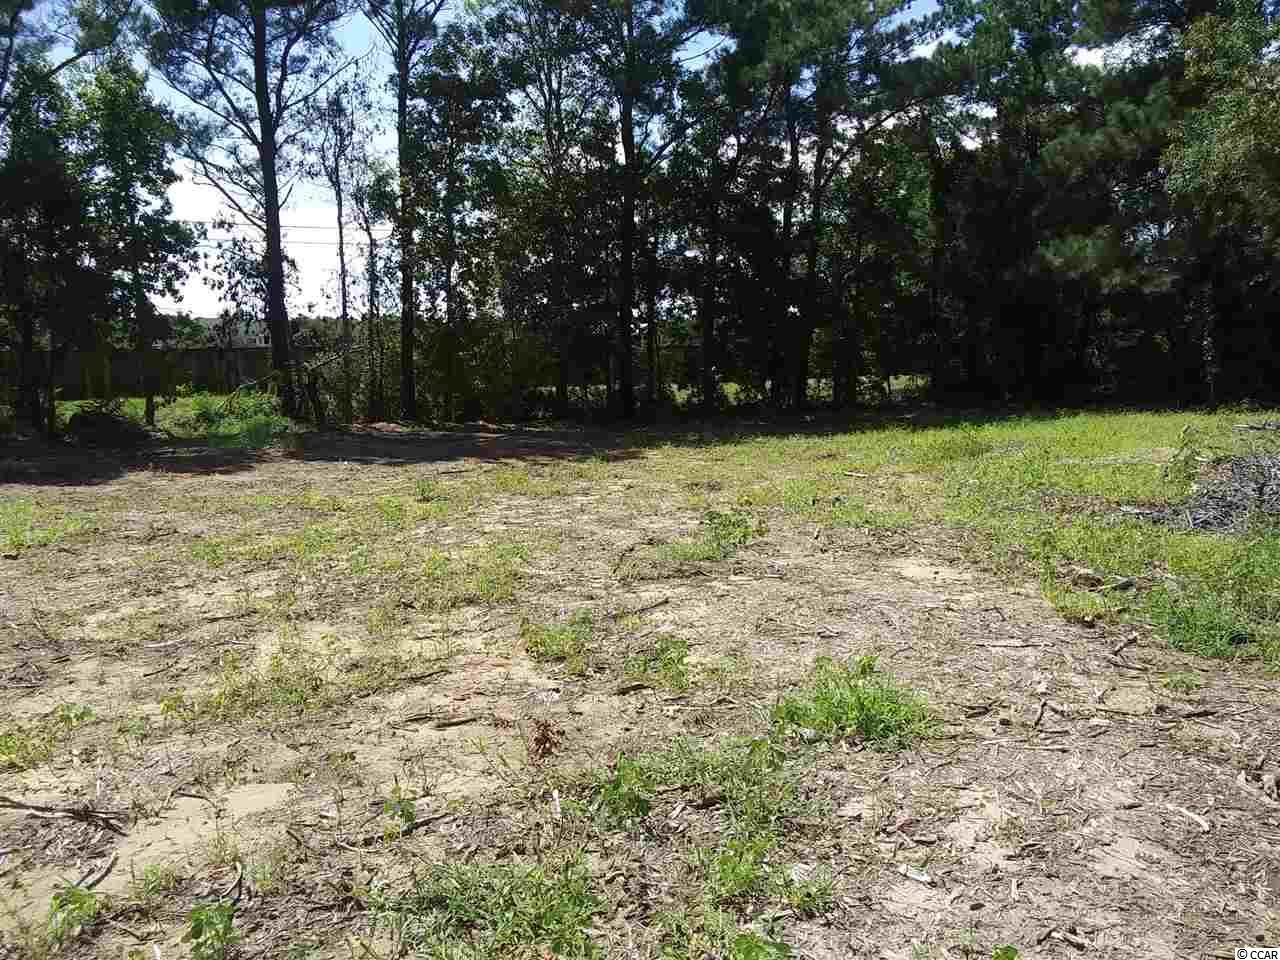 Imagine Yourself Nesting on a DOUBLE SIZE LOT Close to the Beach on the Ocean Side of Hwy 17 just 5 streets from Williams Creek.  Only minutes to the Beach.  Close to Great Shopping, Golf Courses and Cozy Cherry Grove. Duplin Winery, Alabama Theater, Barefoot Landing and Restaurants Galore.